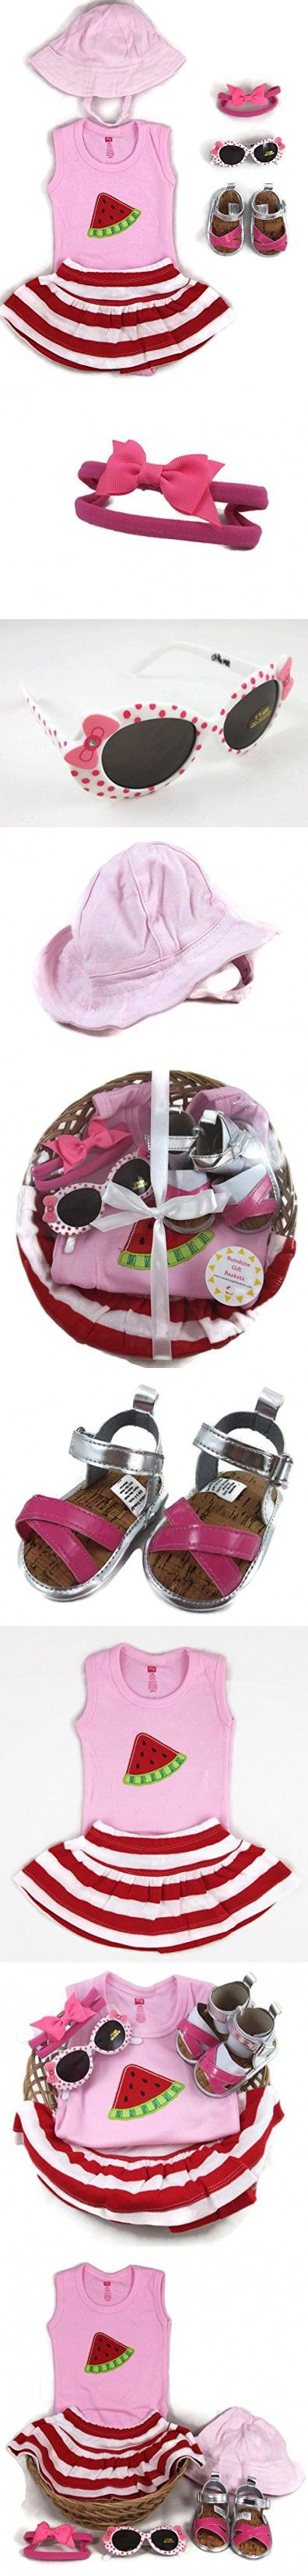 Sunshine Gift Baskets - 4 Piece Summer Baby Shower Gift Set with Sunhat, Sunglasses and Sandals